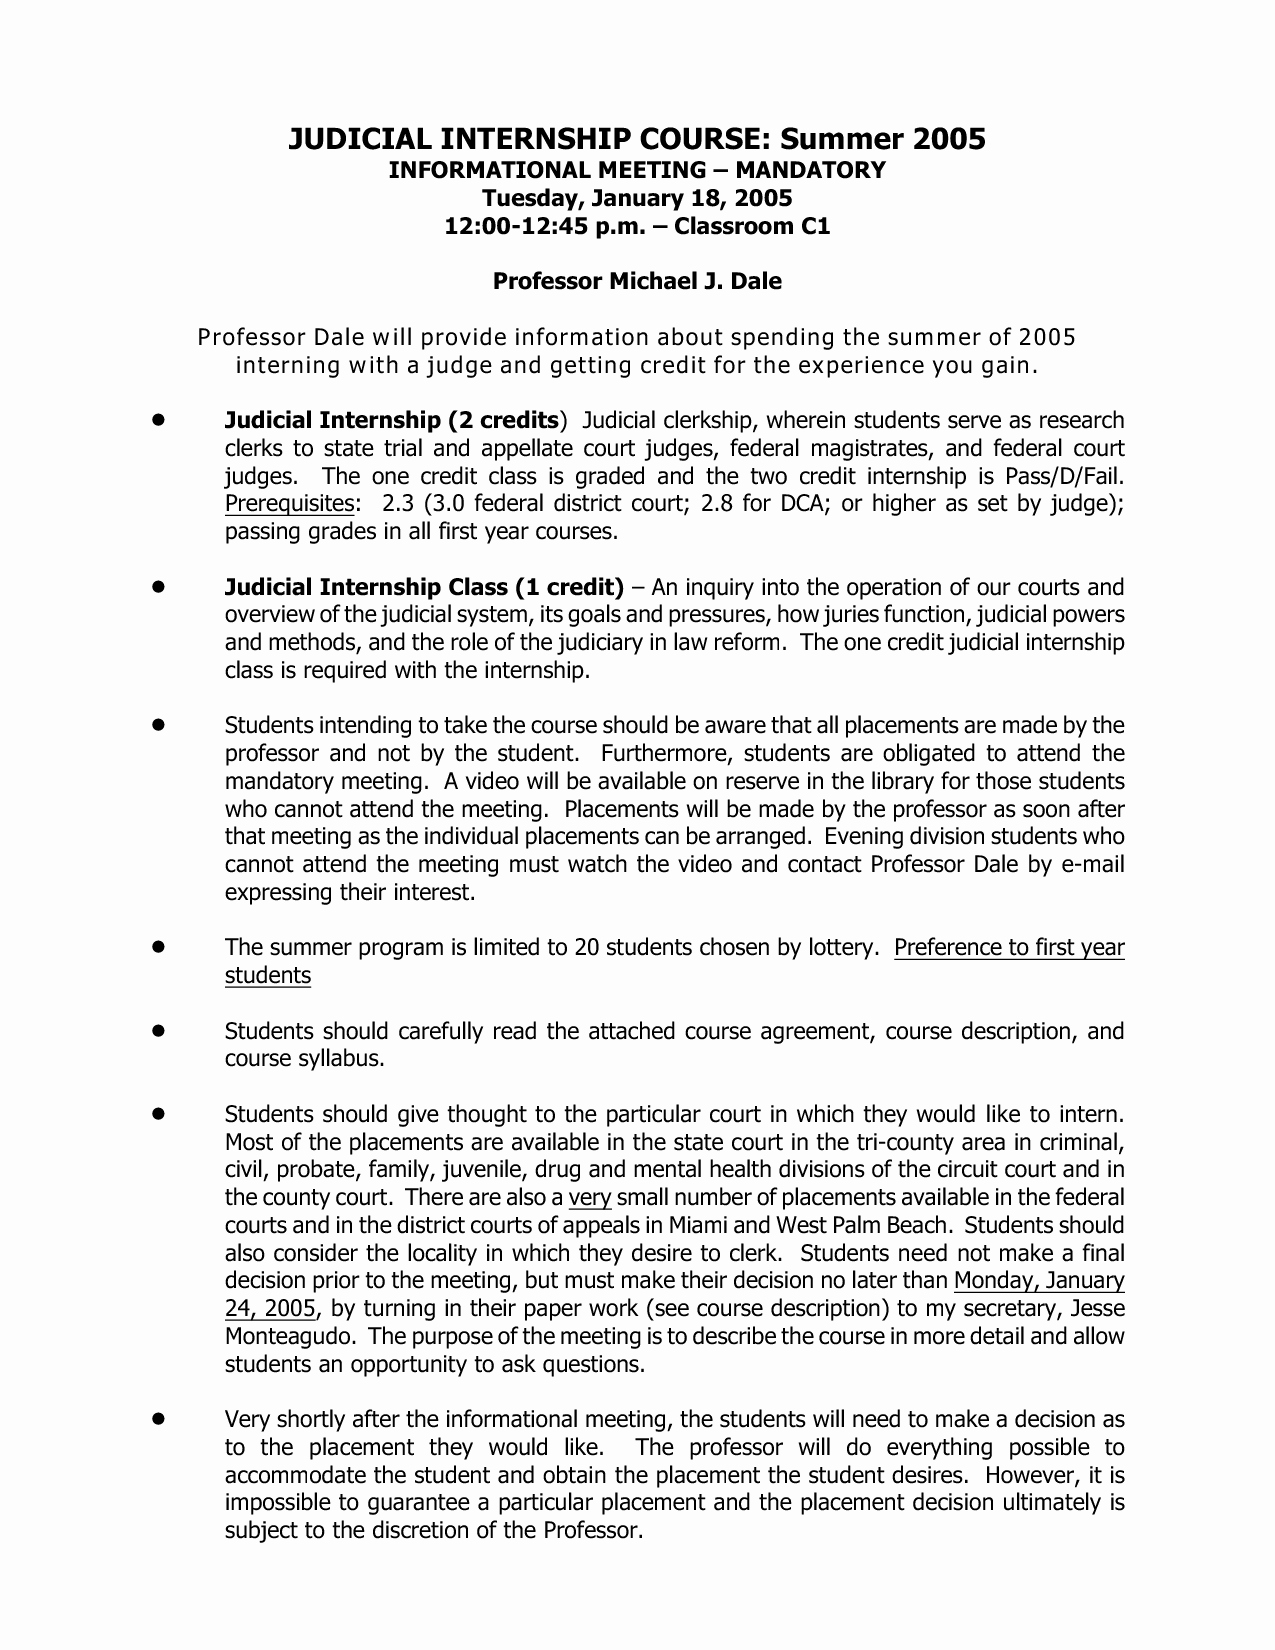 Sample Legal Memo format Beautiful Best S Of Legal Research Memo format Legal Research